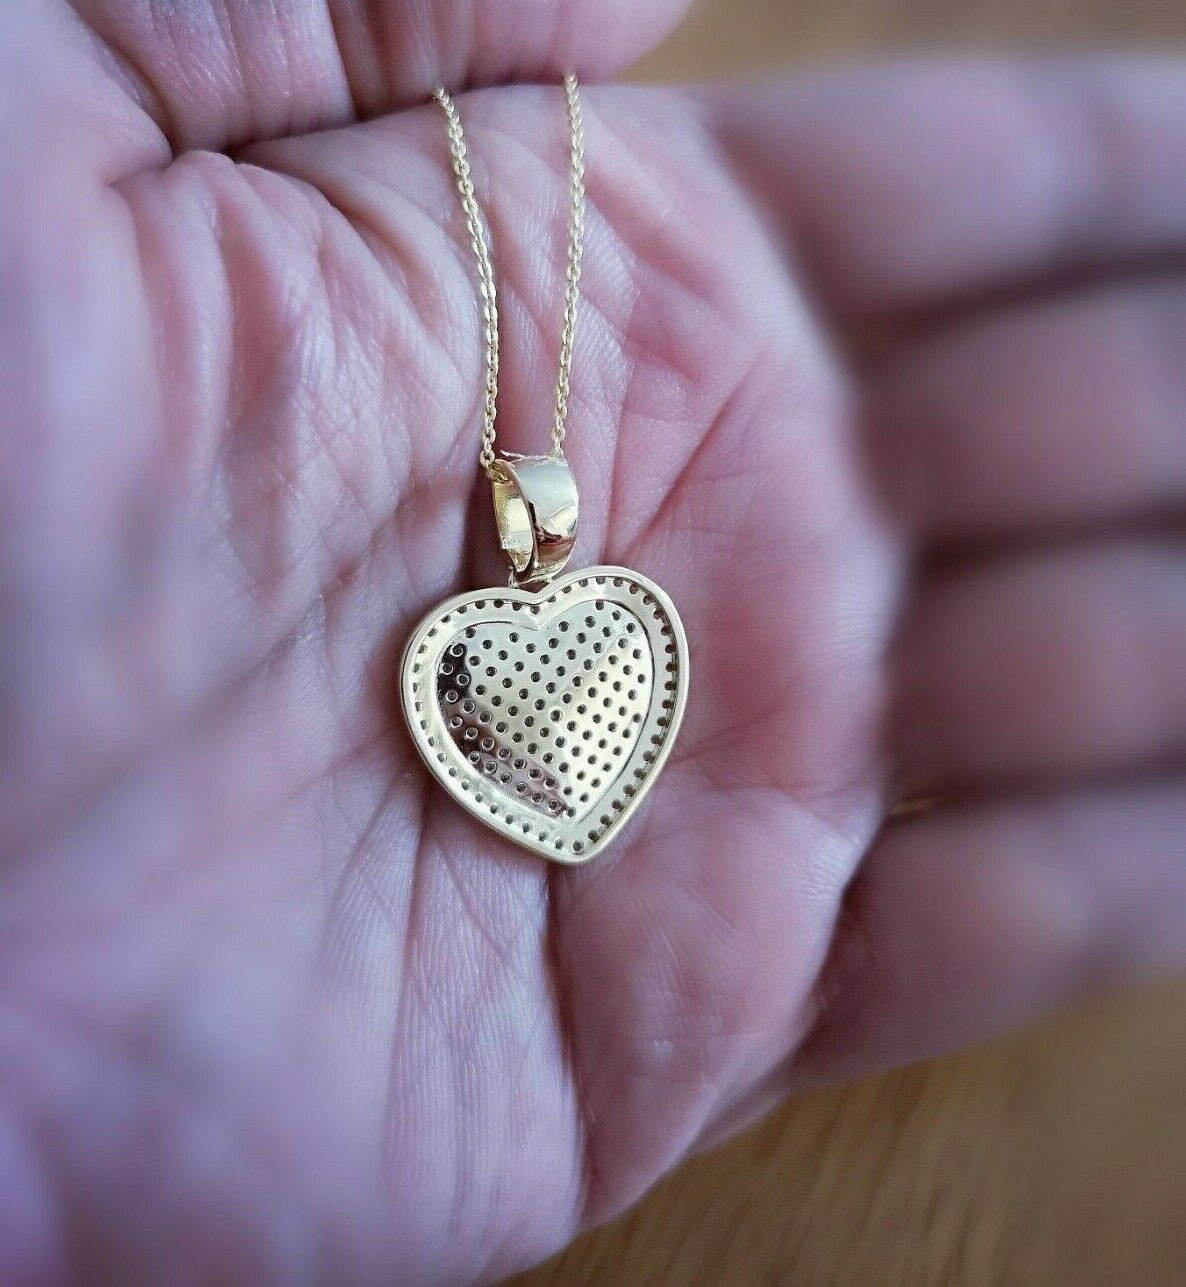 1 Ct Diamond Pendant Womens Necklace Heart Shape in 14K Yellow Gold over Chain 5